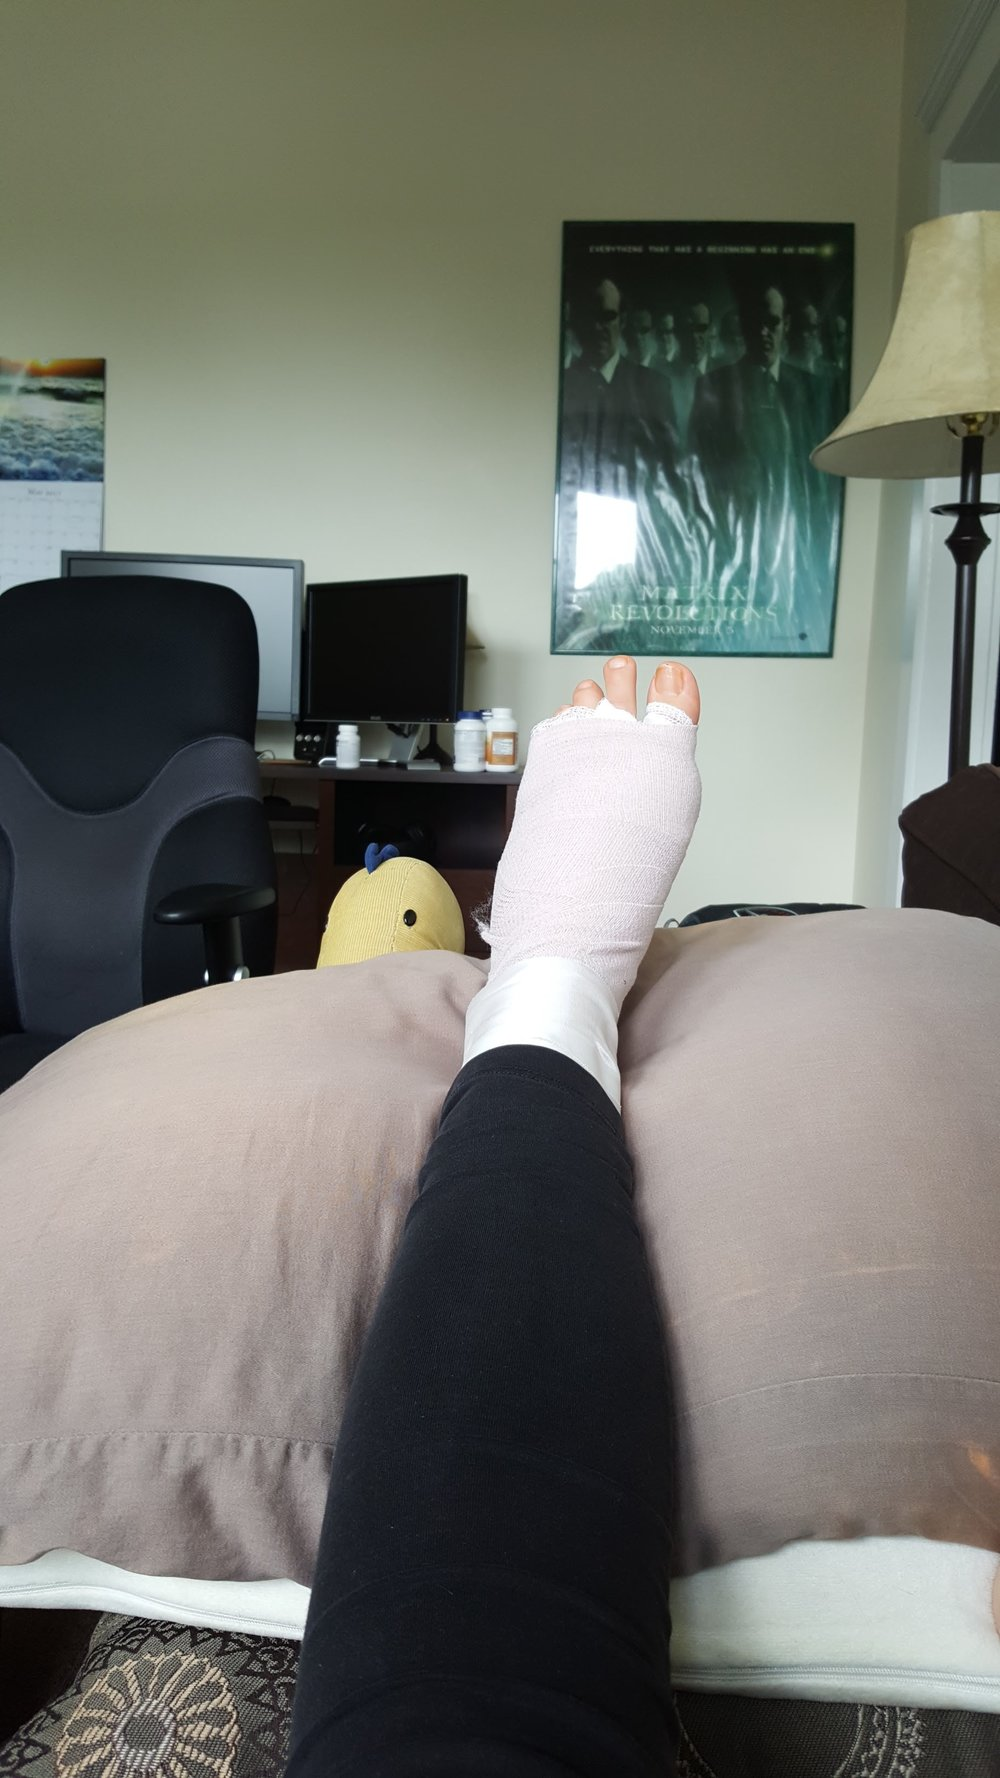 My foot post-surgery, with a creeping dinosaur keeping an eye on me